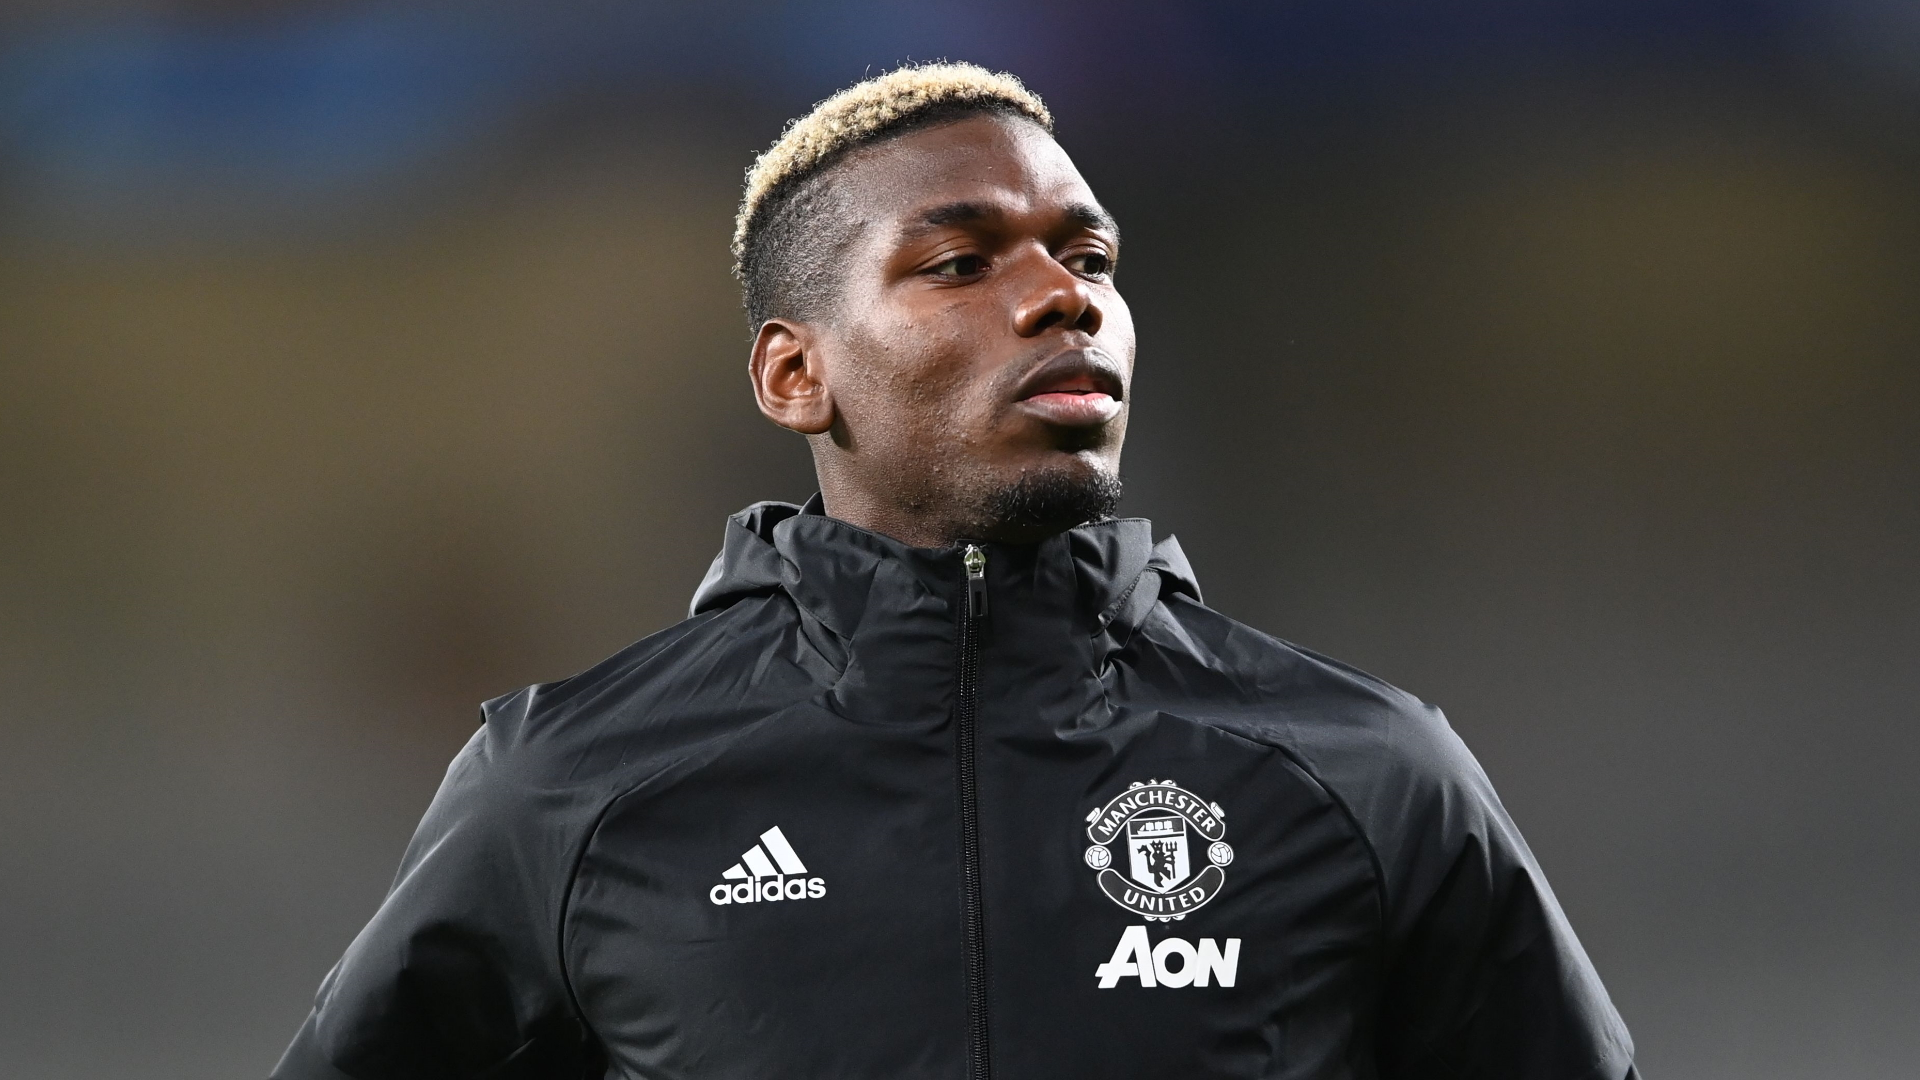 Success will keep players like Pogba at Manchester United - Solskjaer